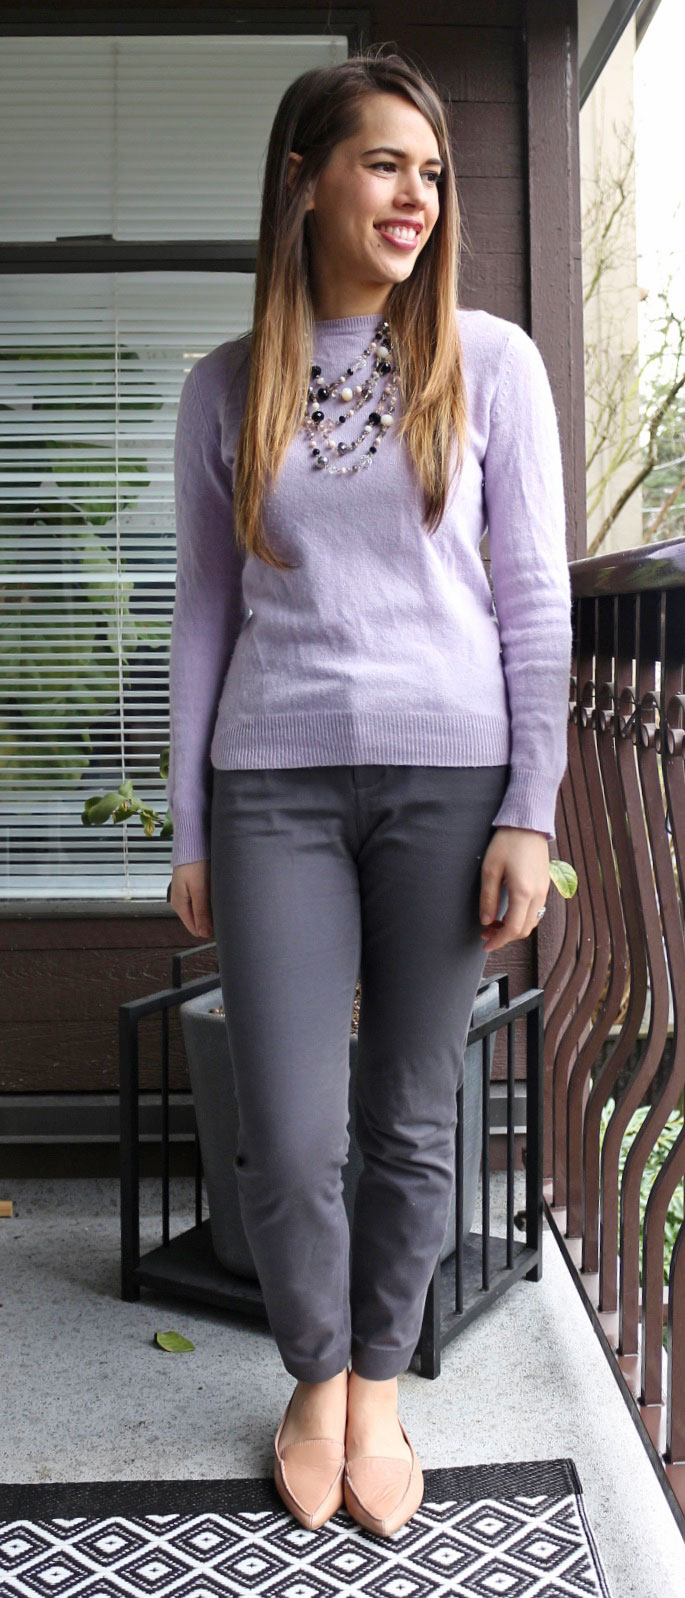 Jules in Flats - Joe Fresh Cashmere Sweater